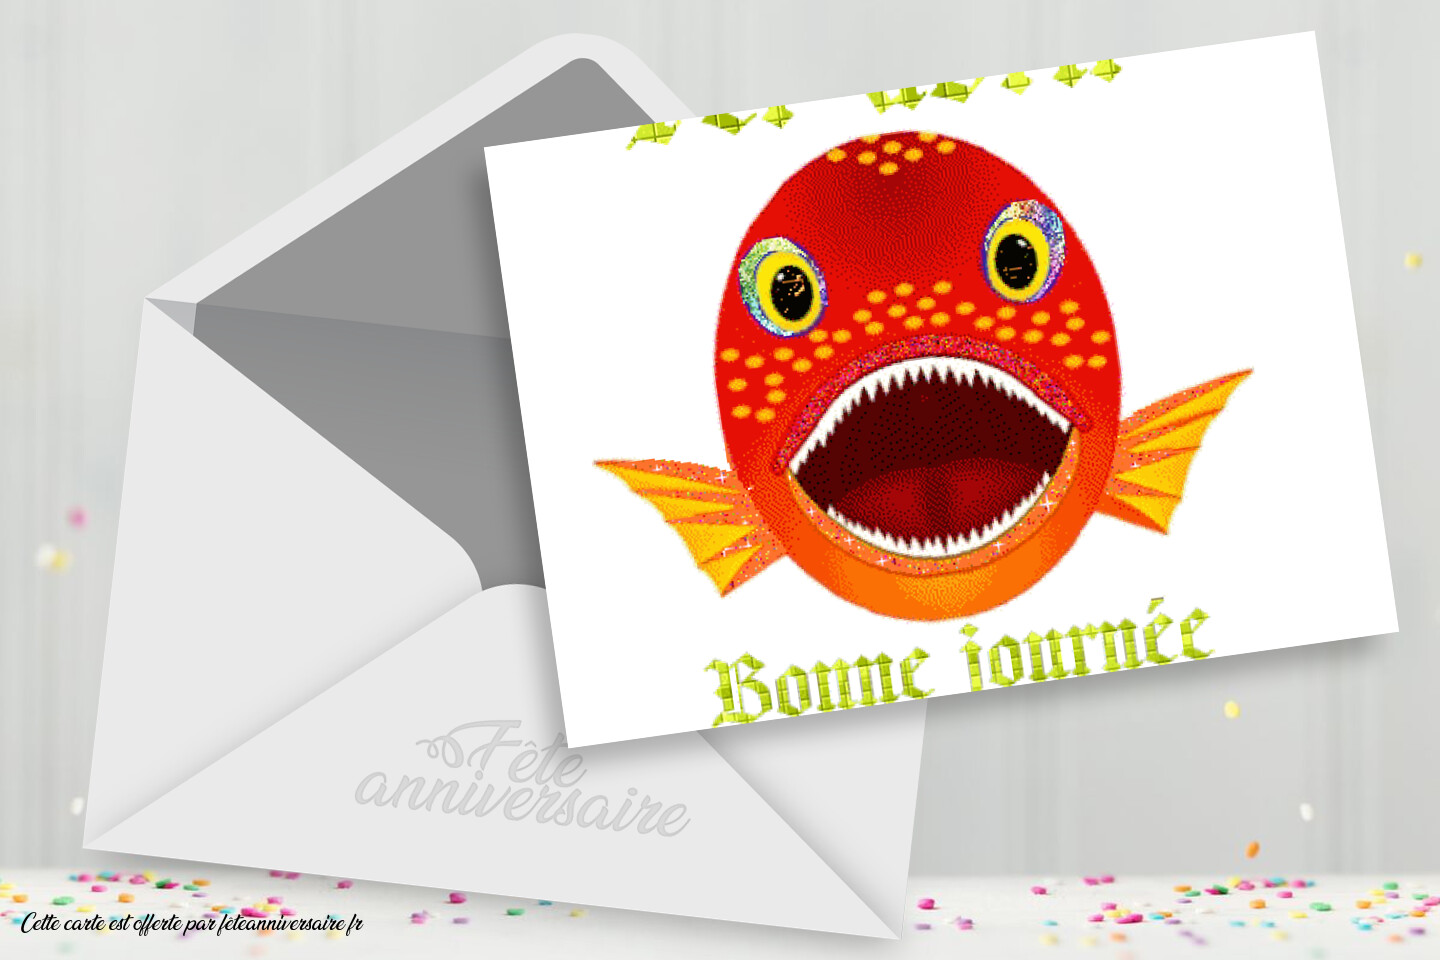 Poisson d'avril ! - Carte virtuelle 1er avril